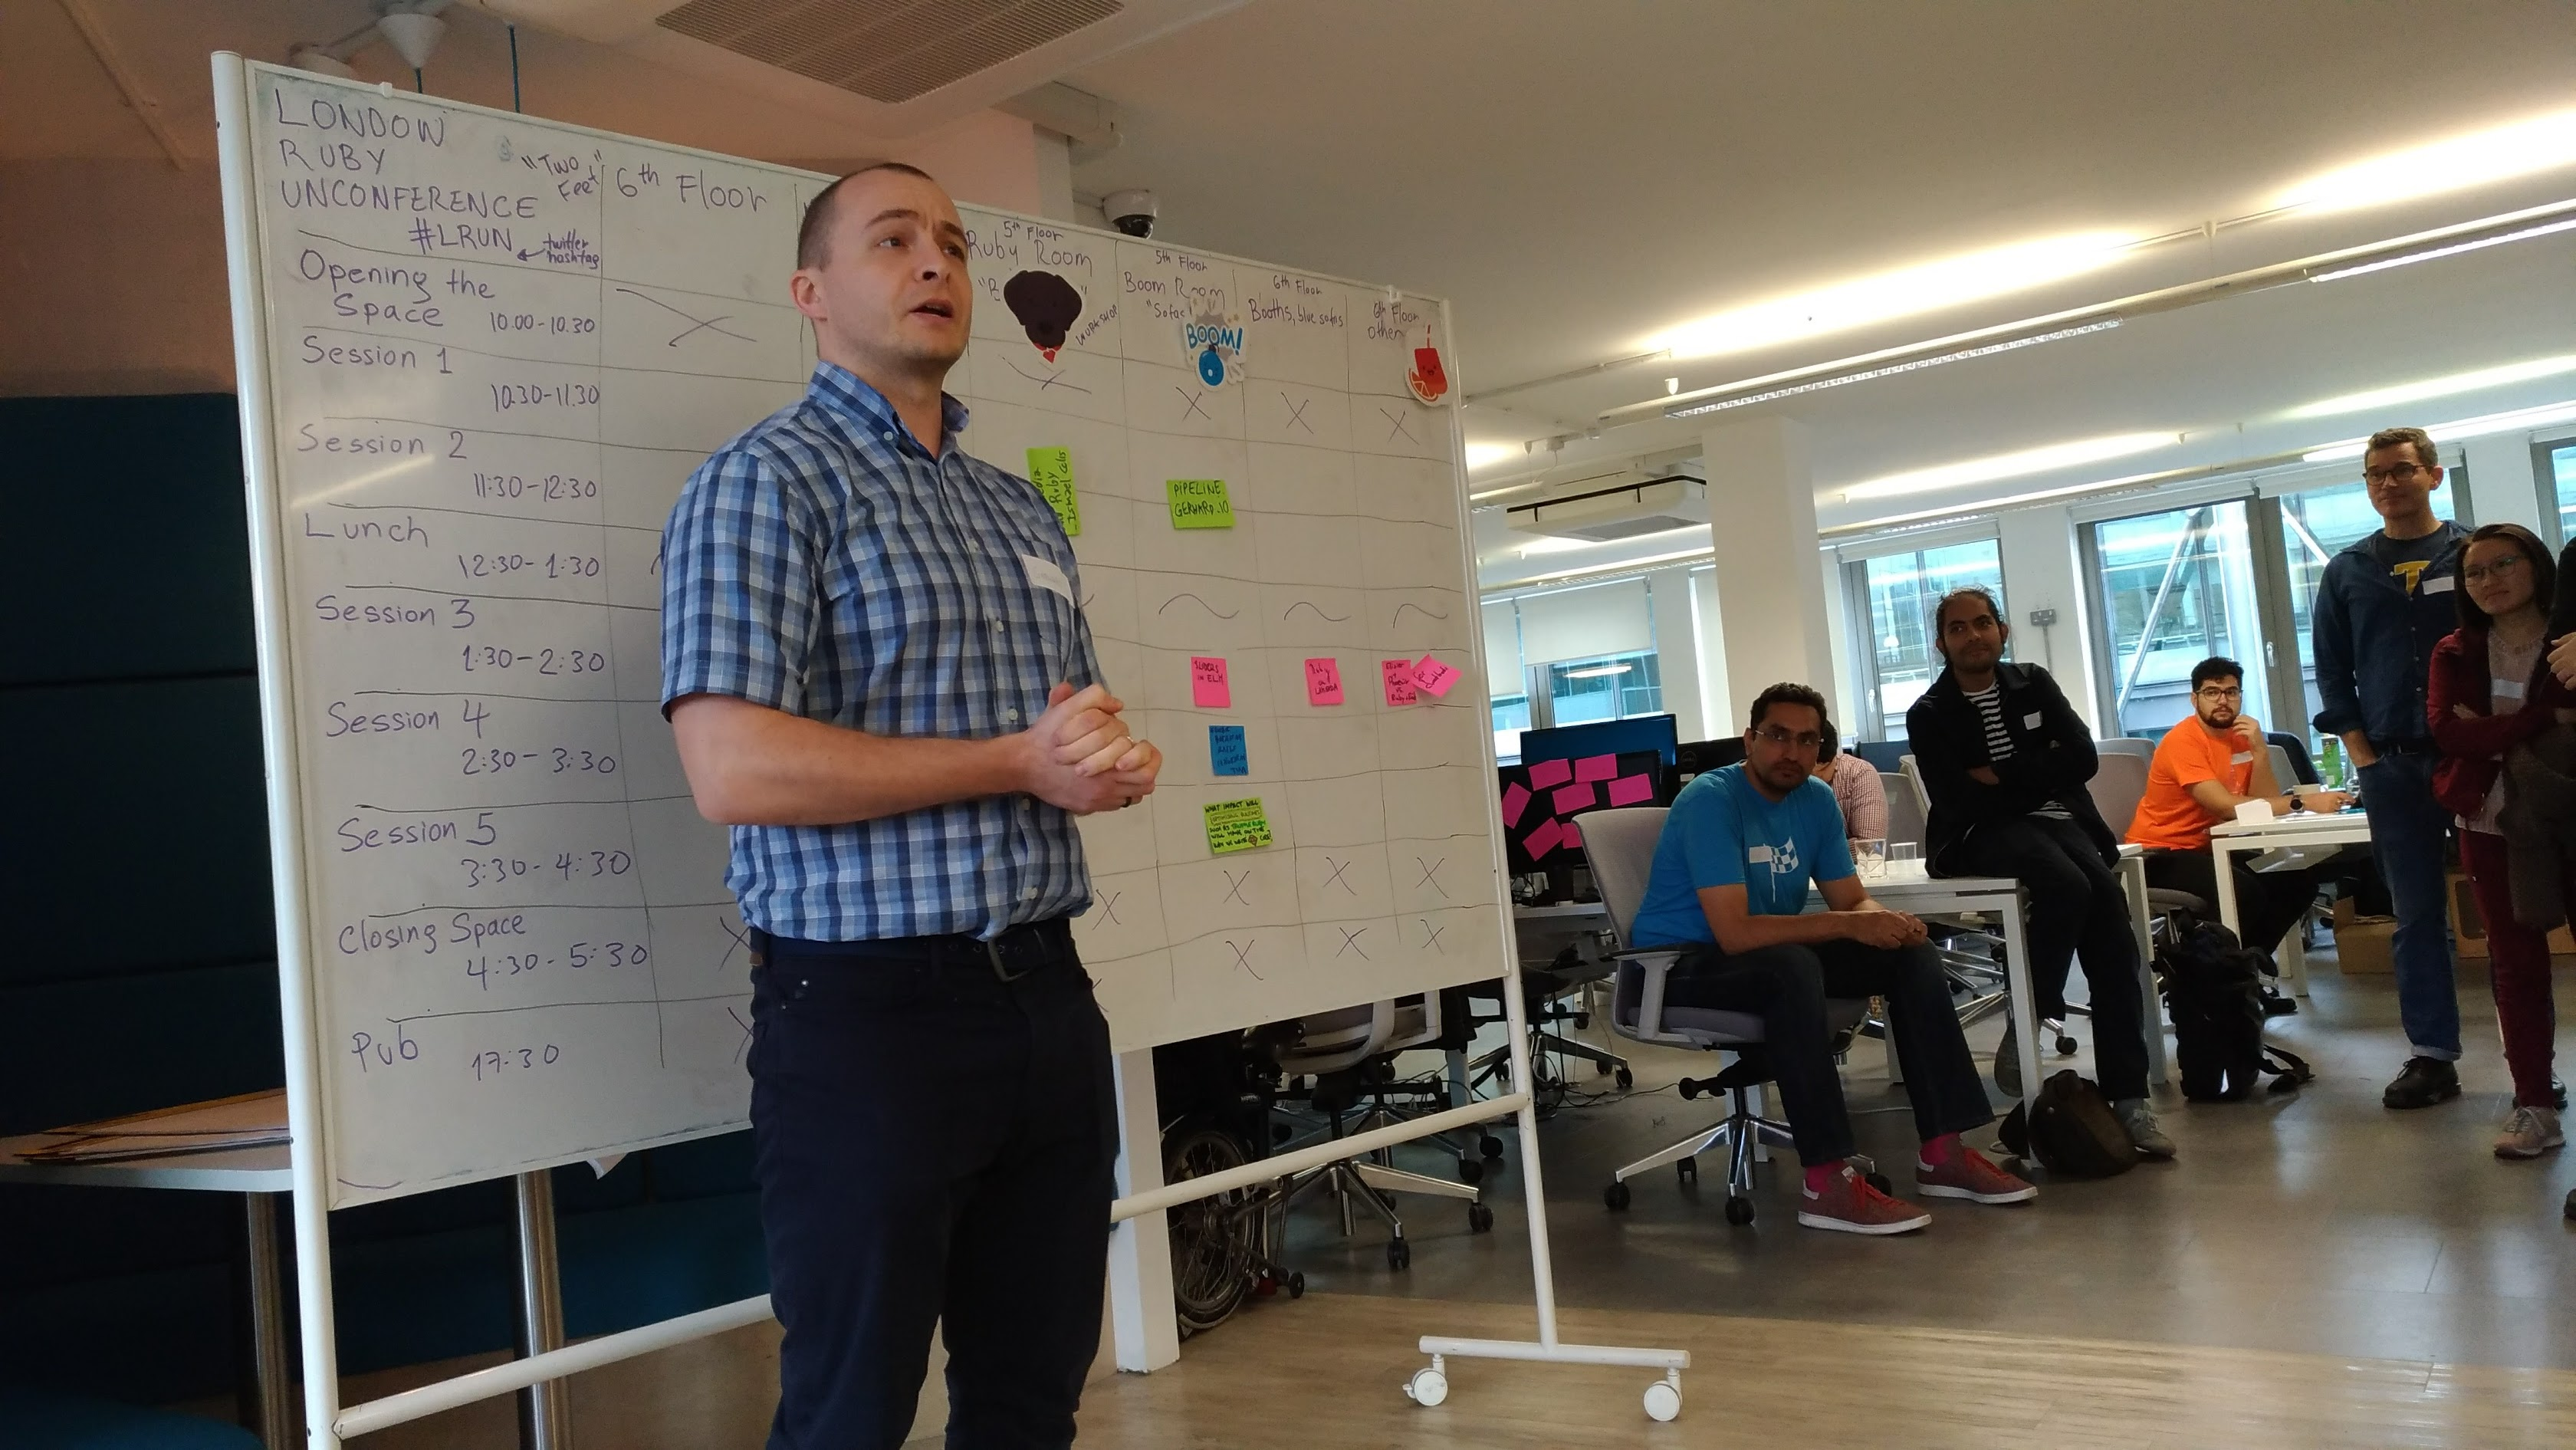 London Ruby Unconference 2017